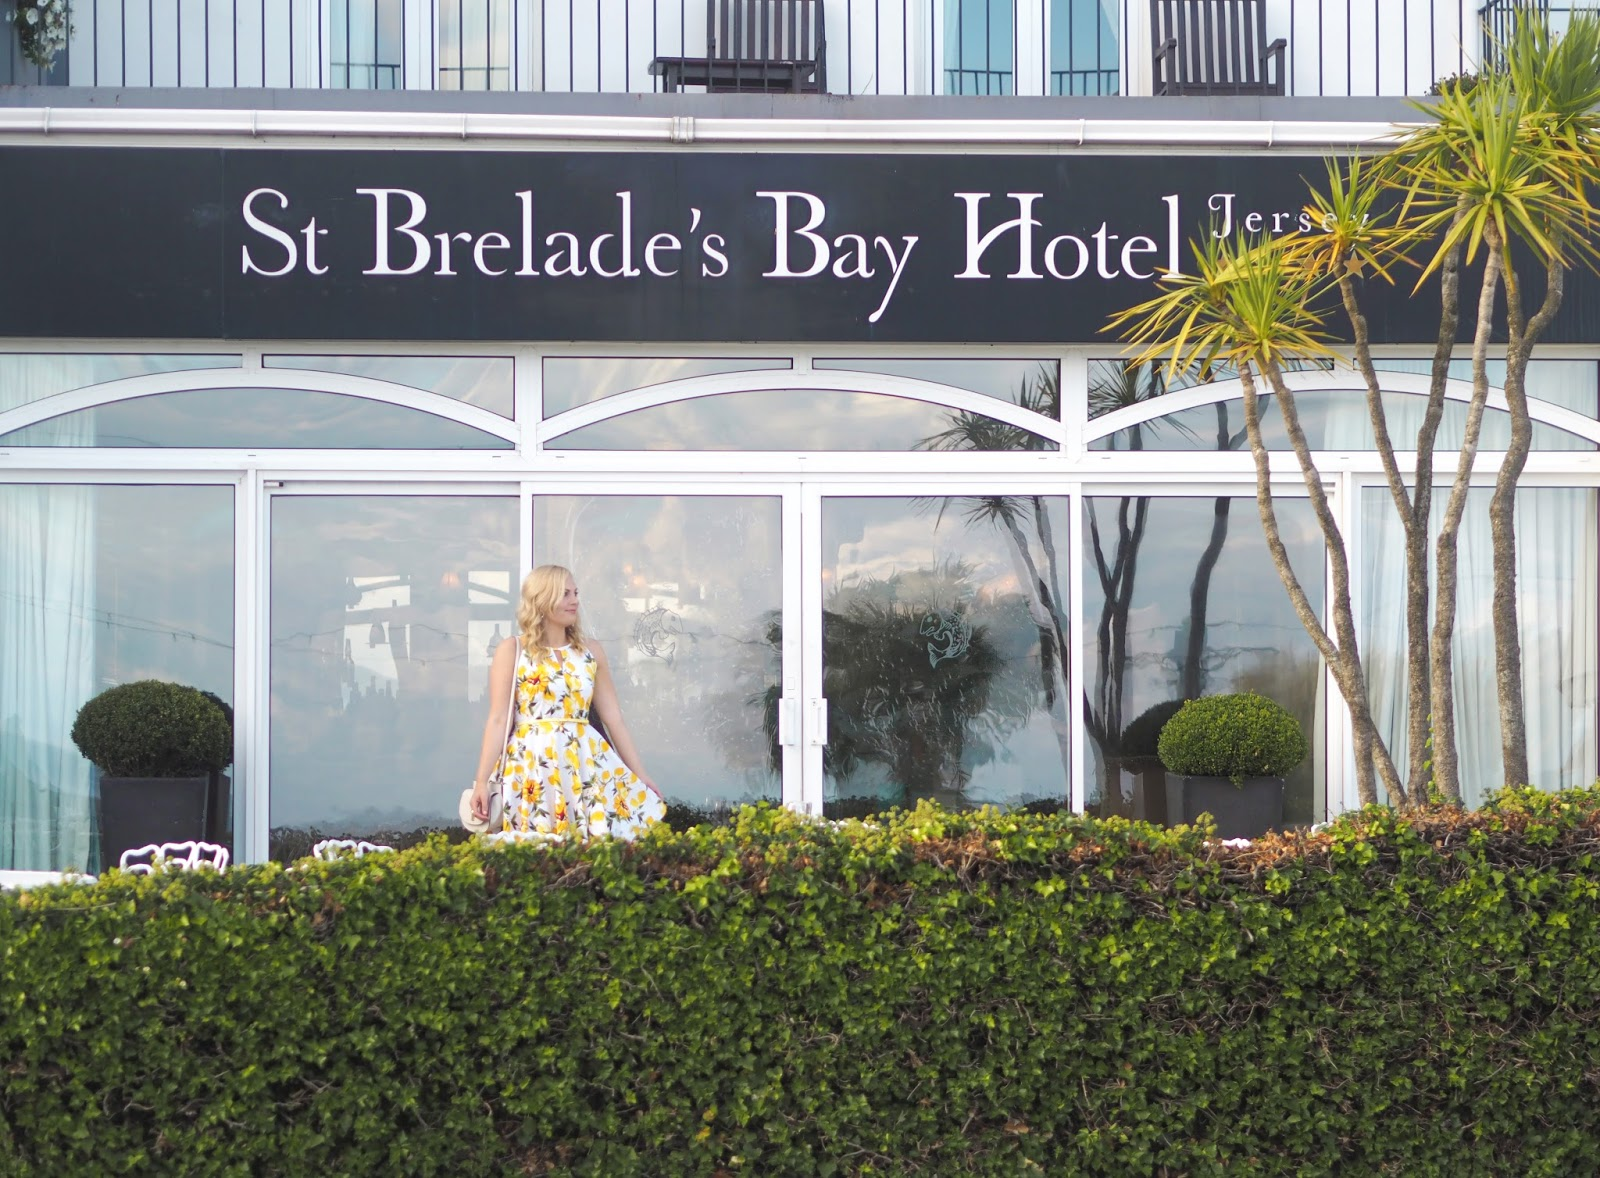 St Brelades Bay Hotel, Jersey, Channel Islands, Katie Kirk Loves, UK Blogger, Hotel Review, Travel Blogger, St Brelades Bay, #VisitJersey, #TheIslandBreak, UK Travel, Travel Photography, Travel The World, Wanderlust, Women Who Explore, Girls That Wander, Femme Travel